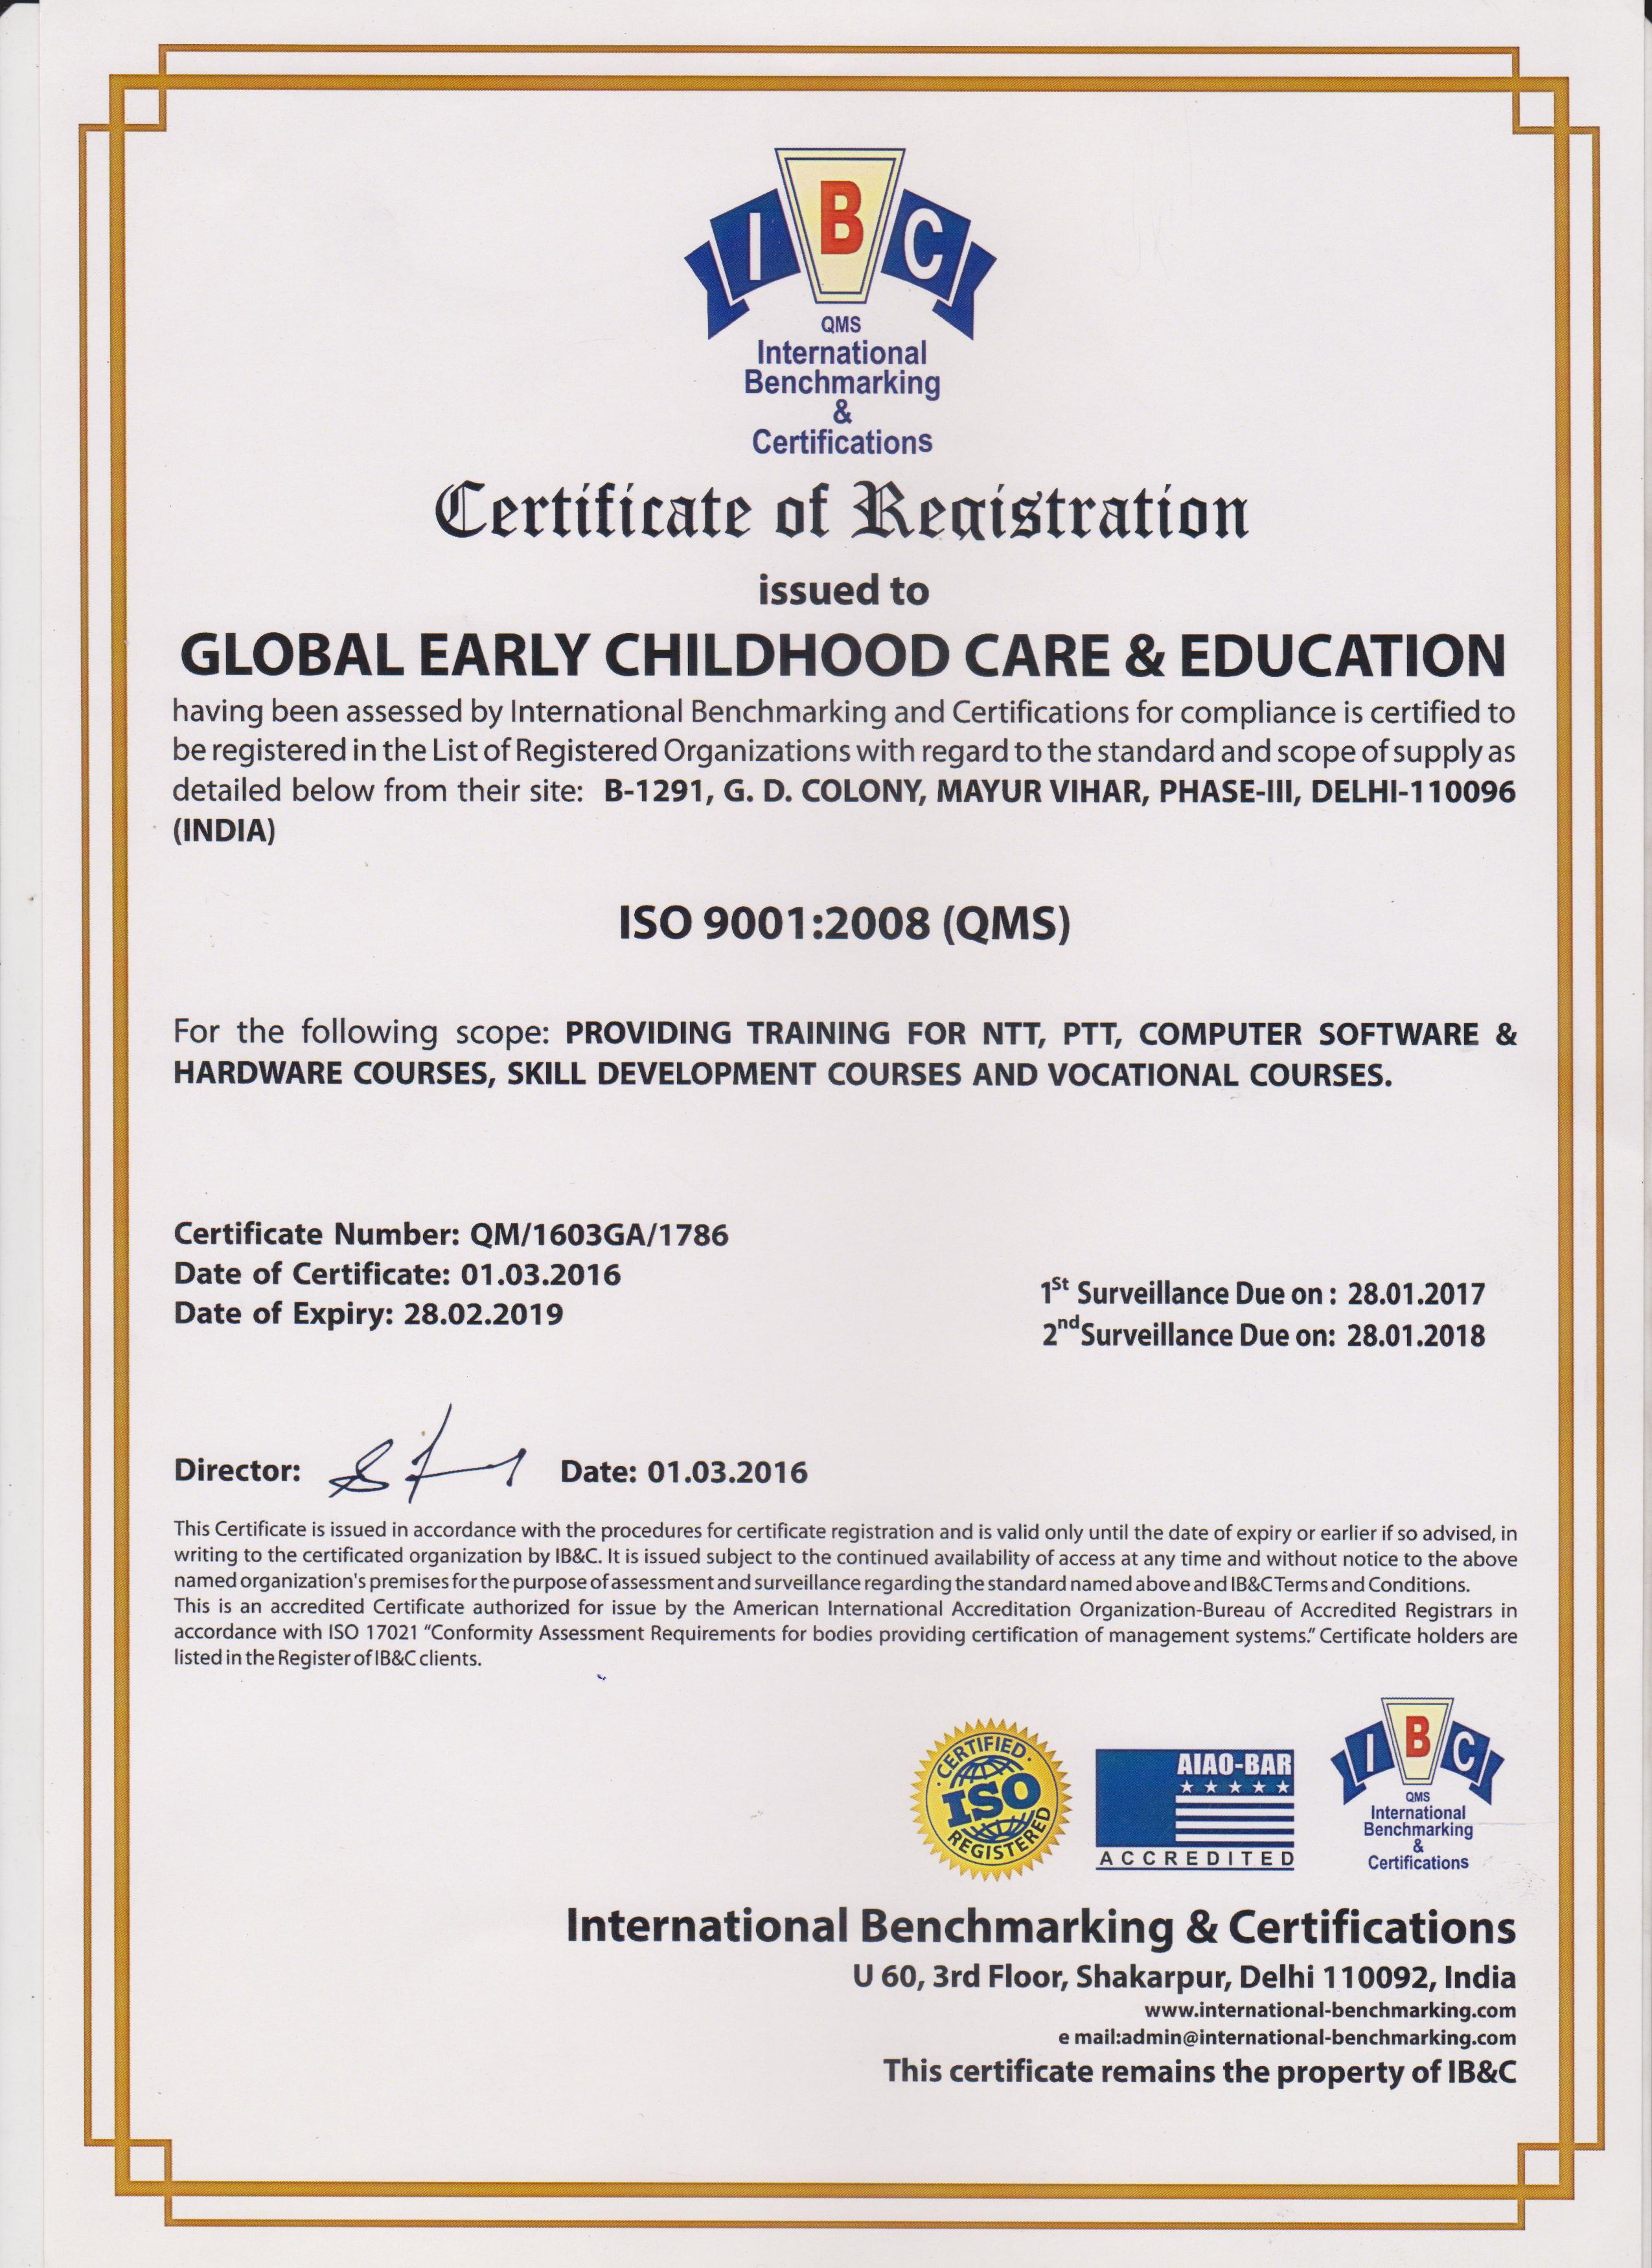 Courses global early childhood care education certificate of permisssion xflitez Gallery